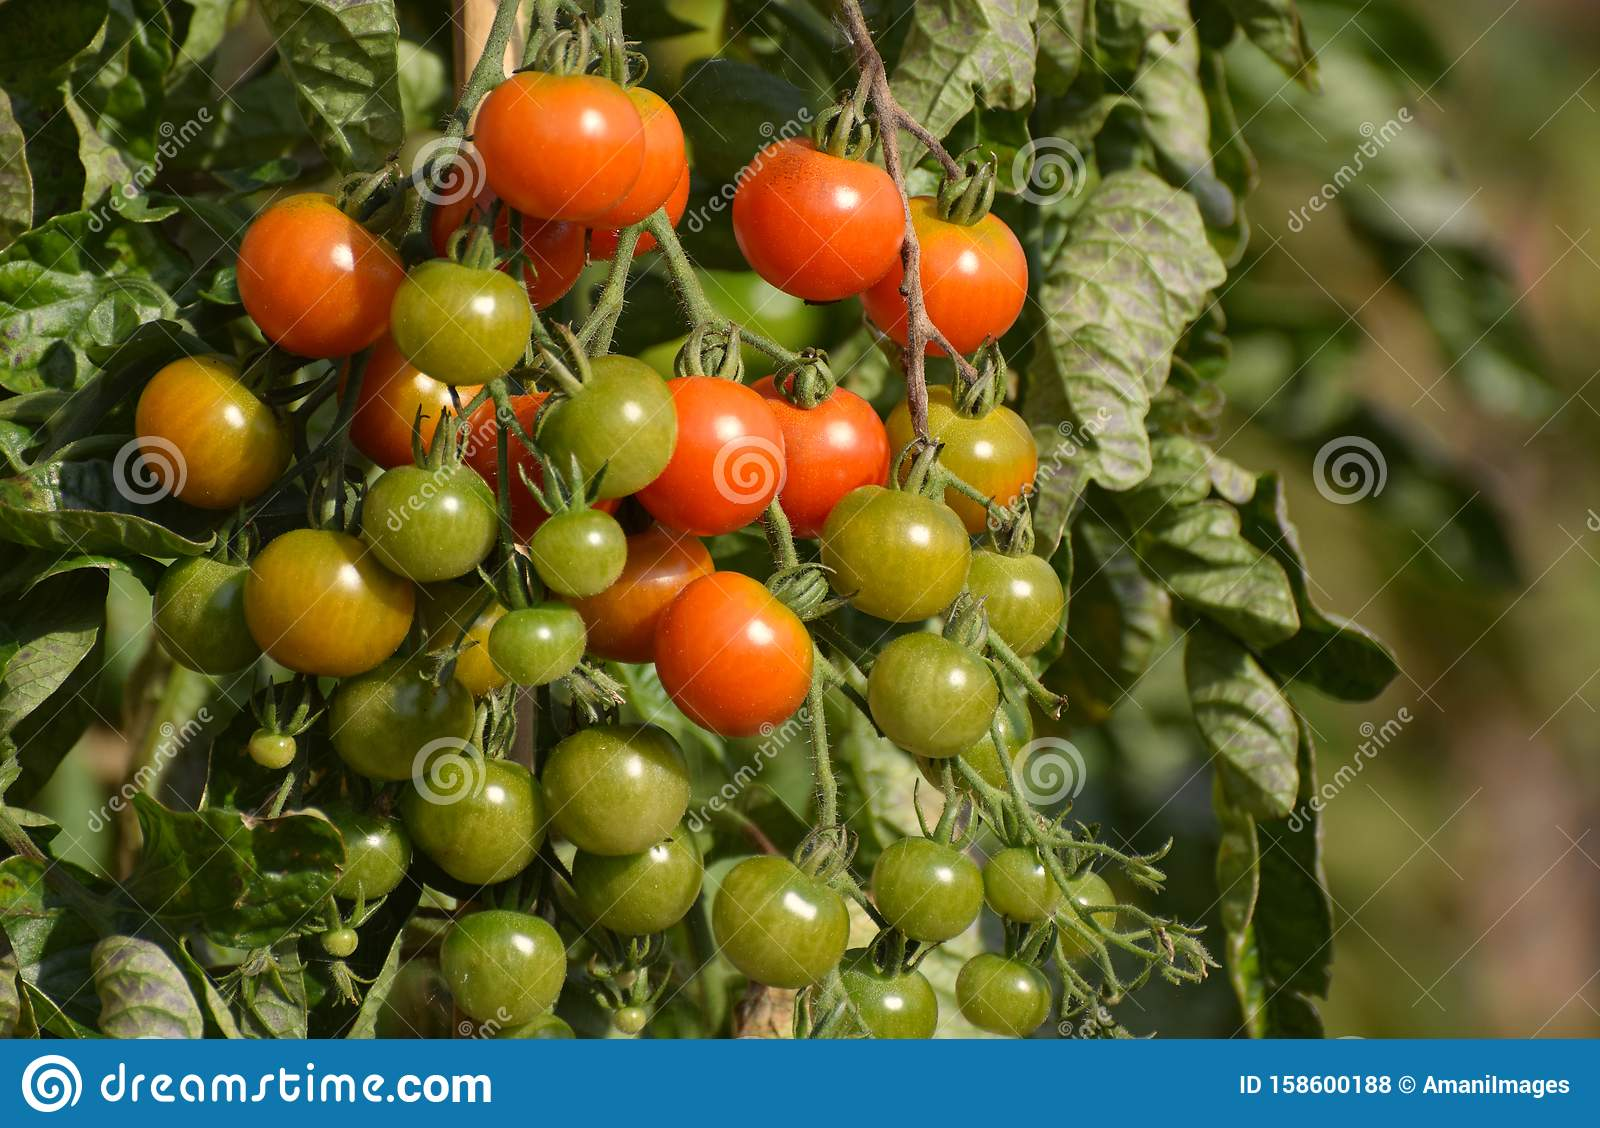 Cherry tomatoes ripening as they grow on the vine